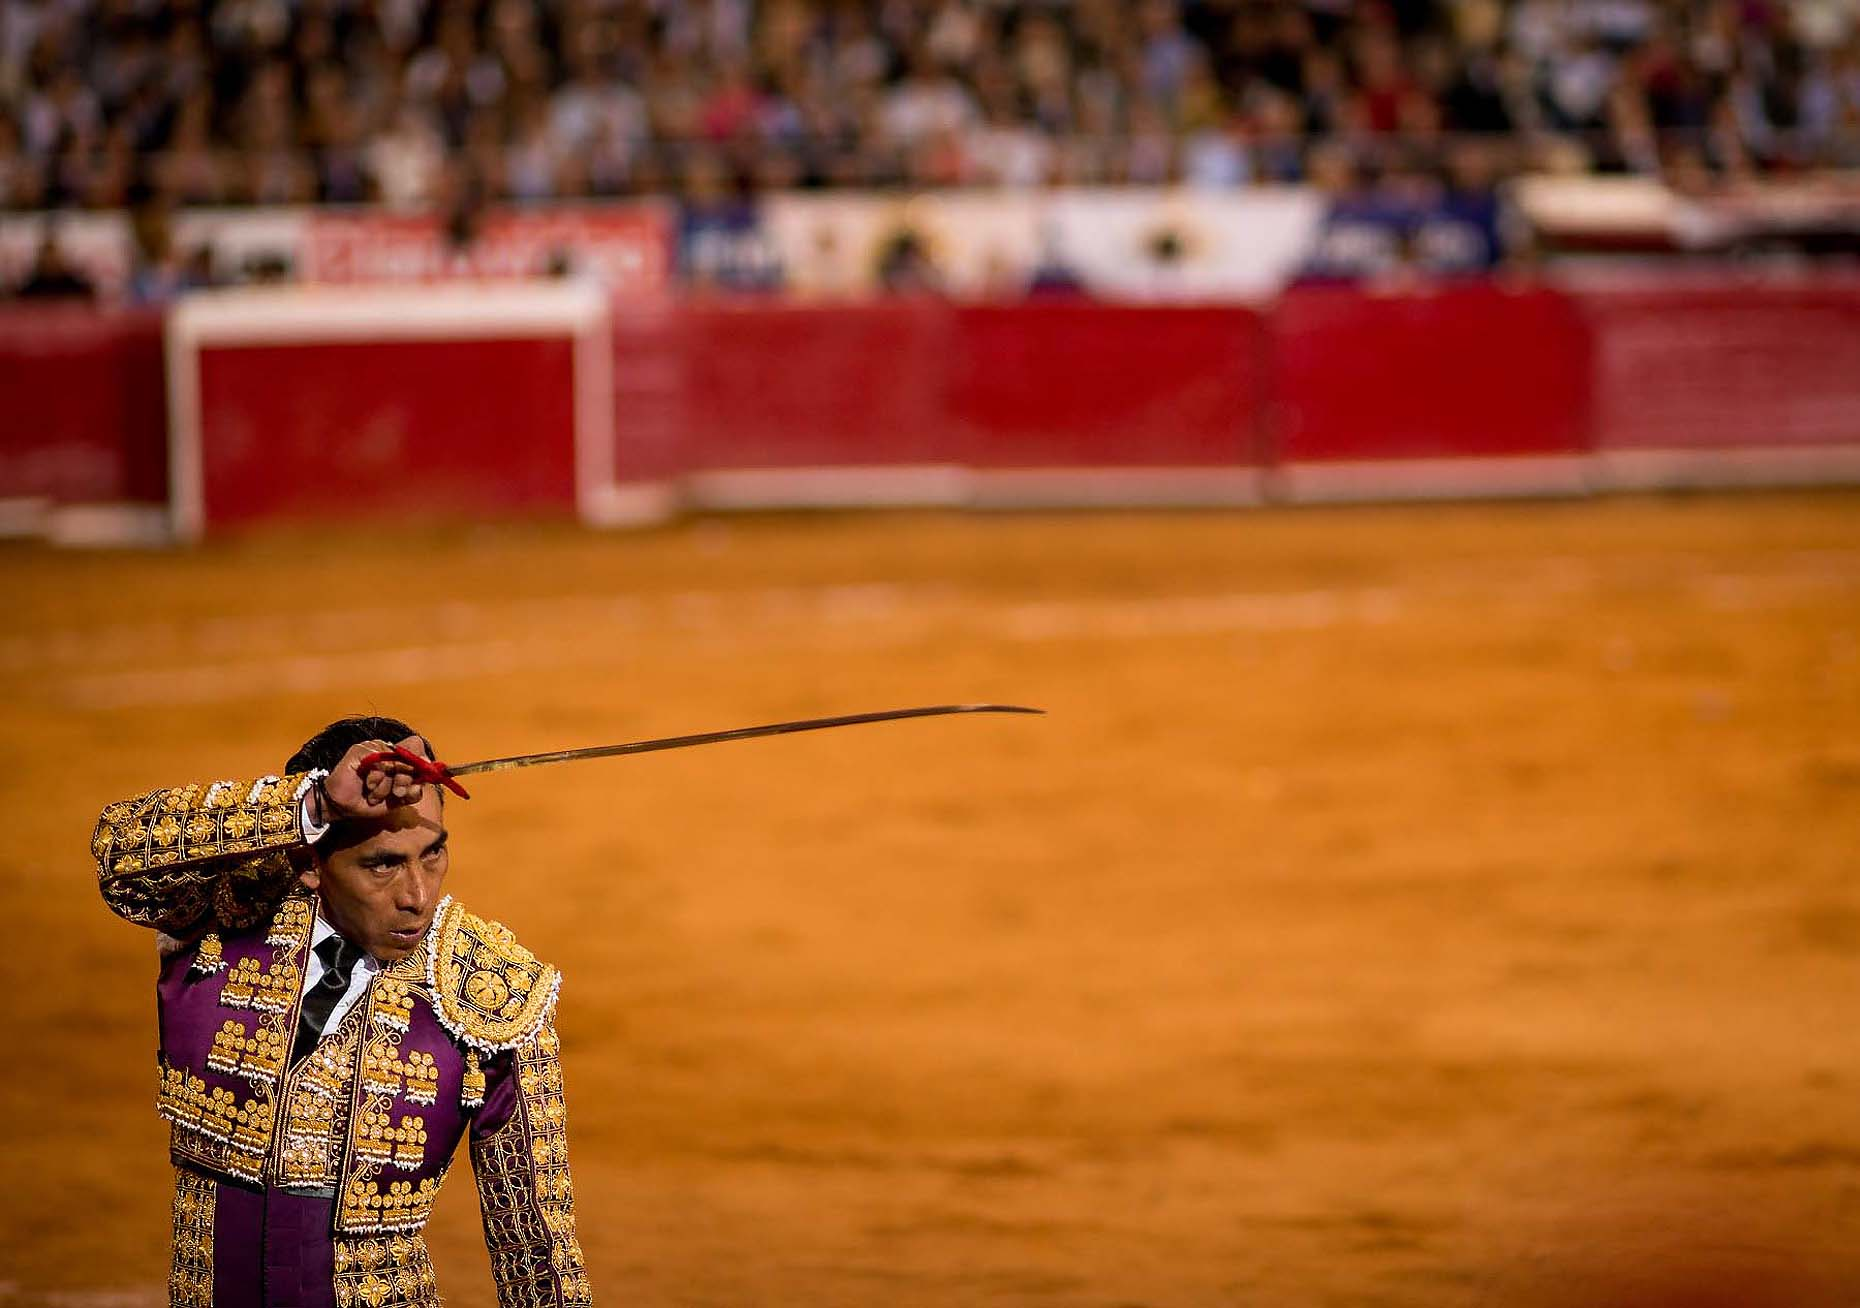 corrida-de-toros-bullfight-matador-sword-plaza-mexico-city-bullring-25